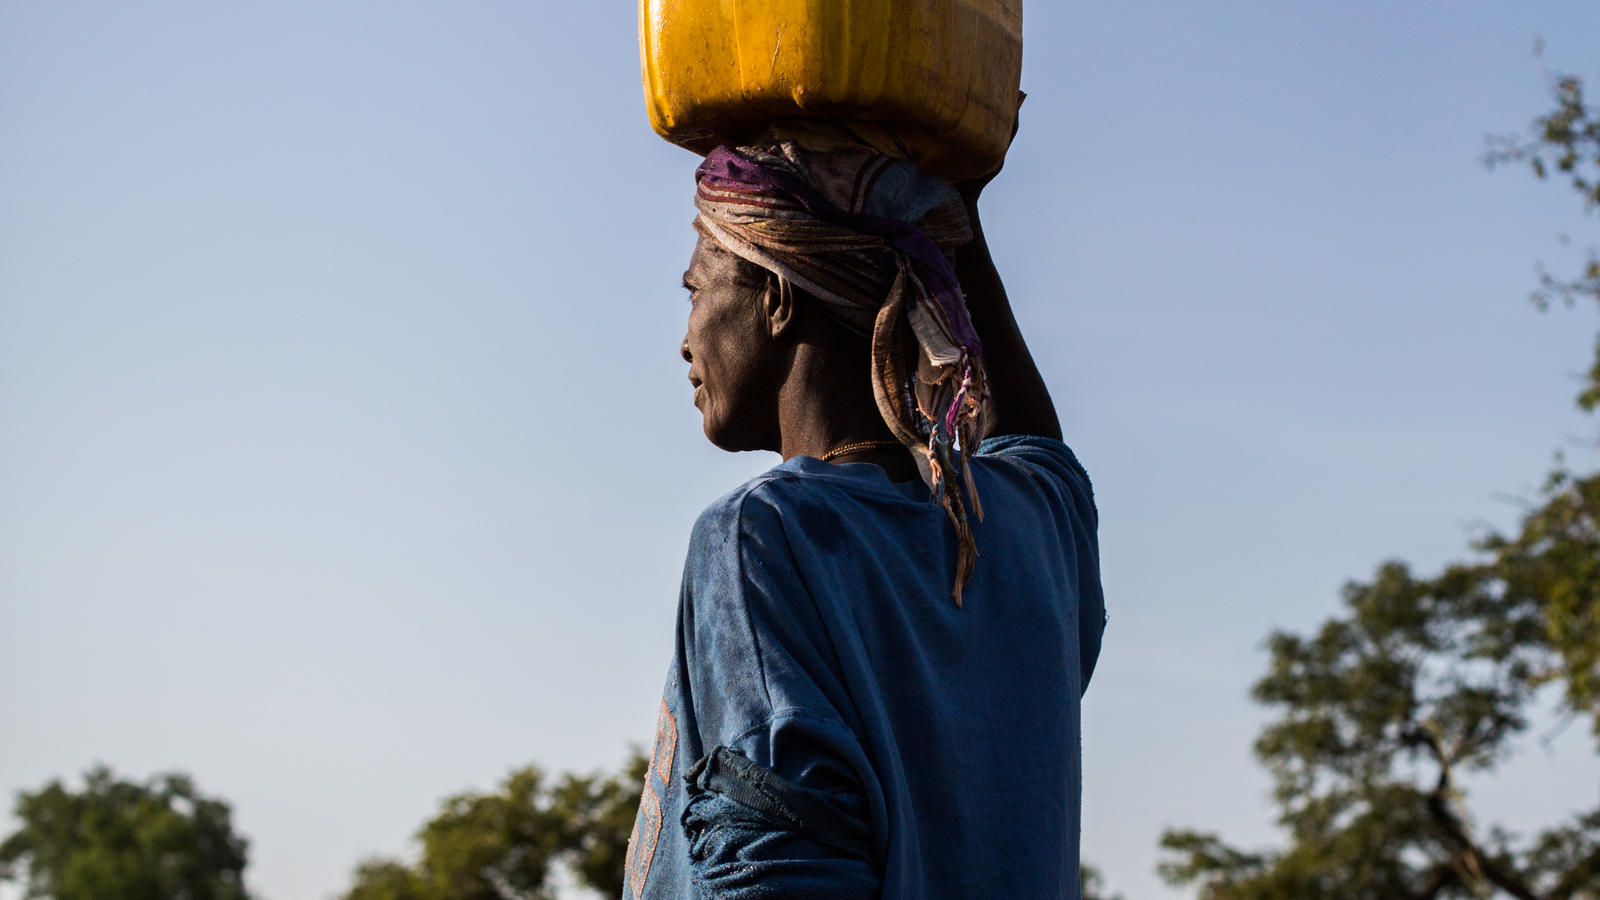 Bangre carries a jerry can in Imbina, Burkina Faso.